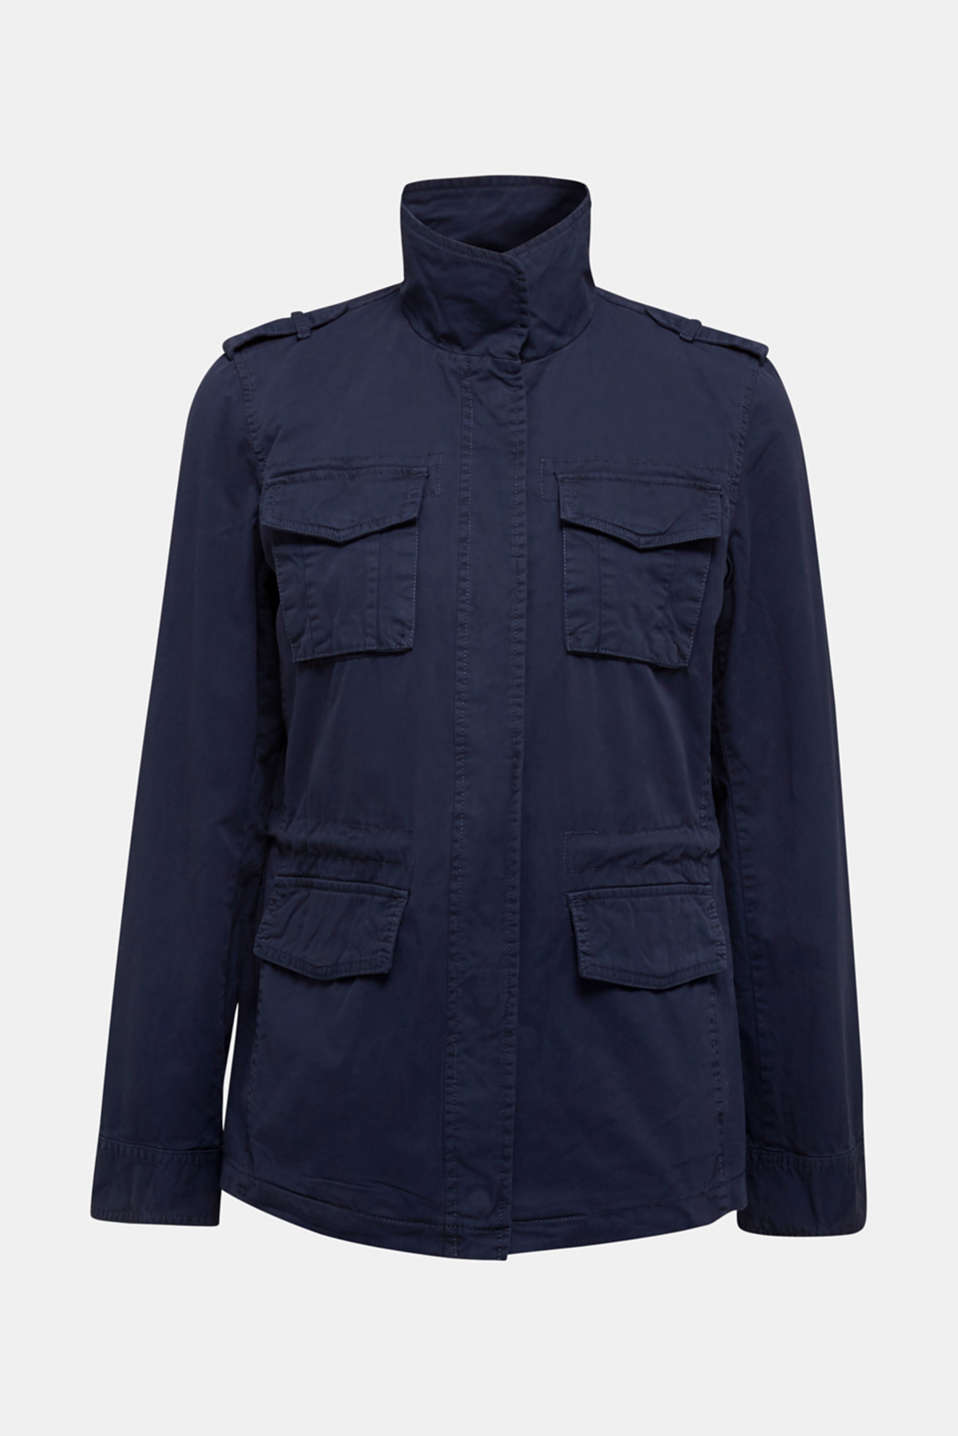 Utility jacket in 100% cotton, NAVY, detail image number 6